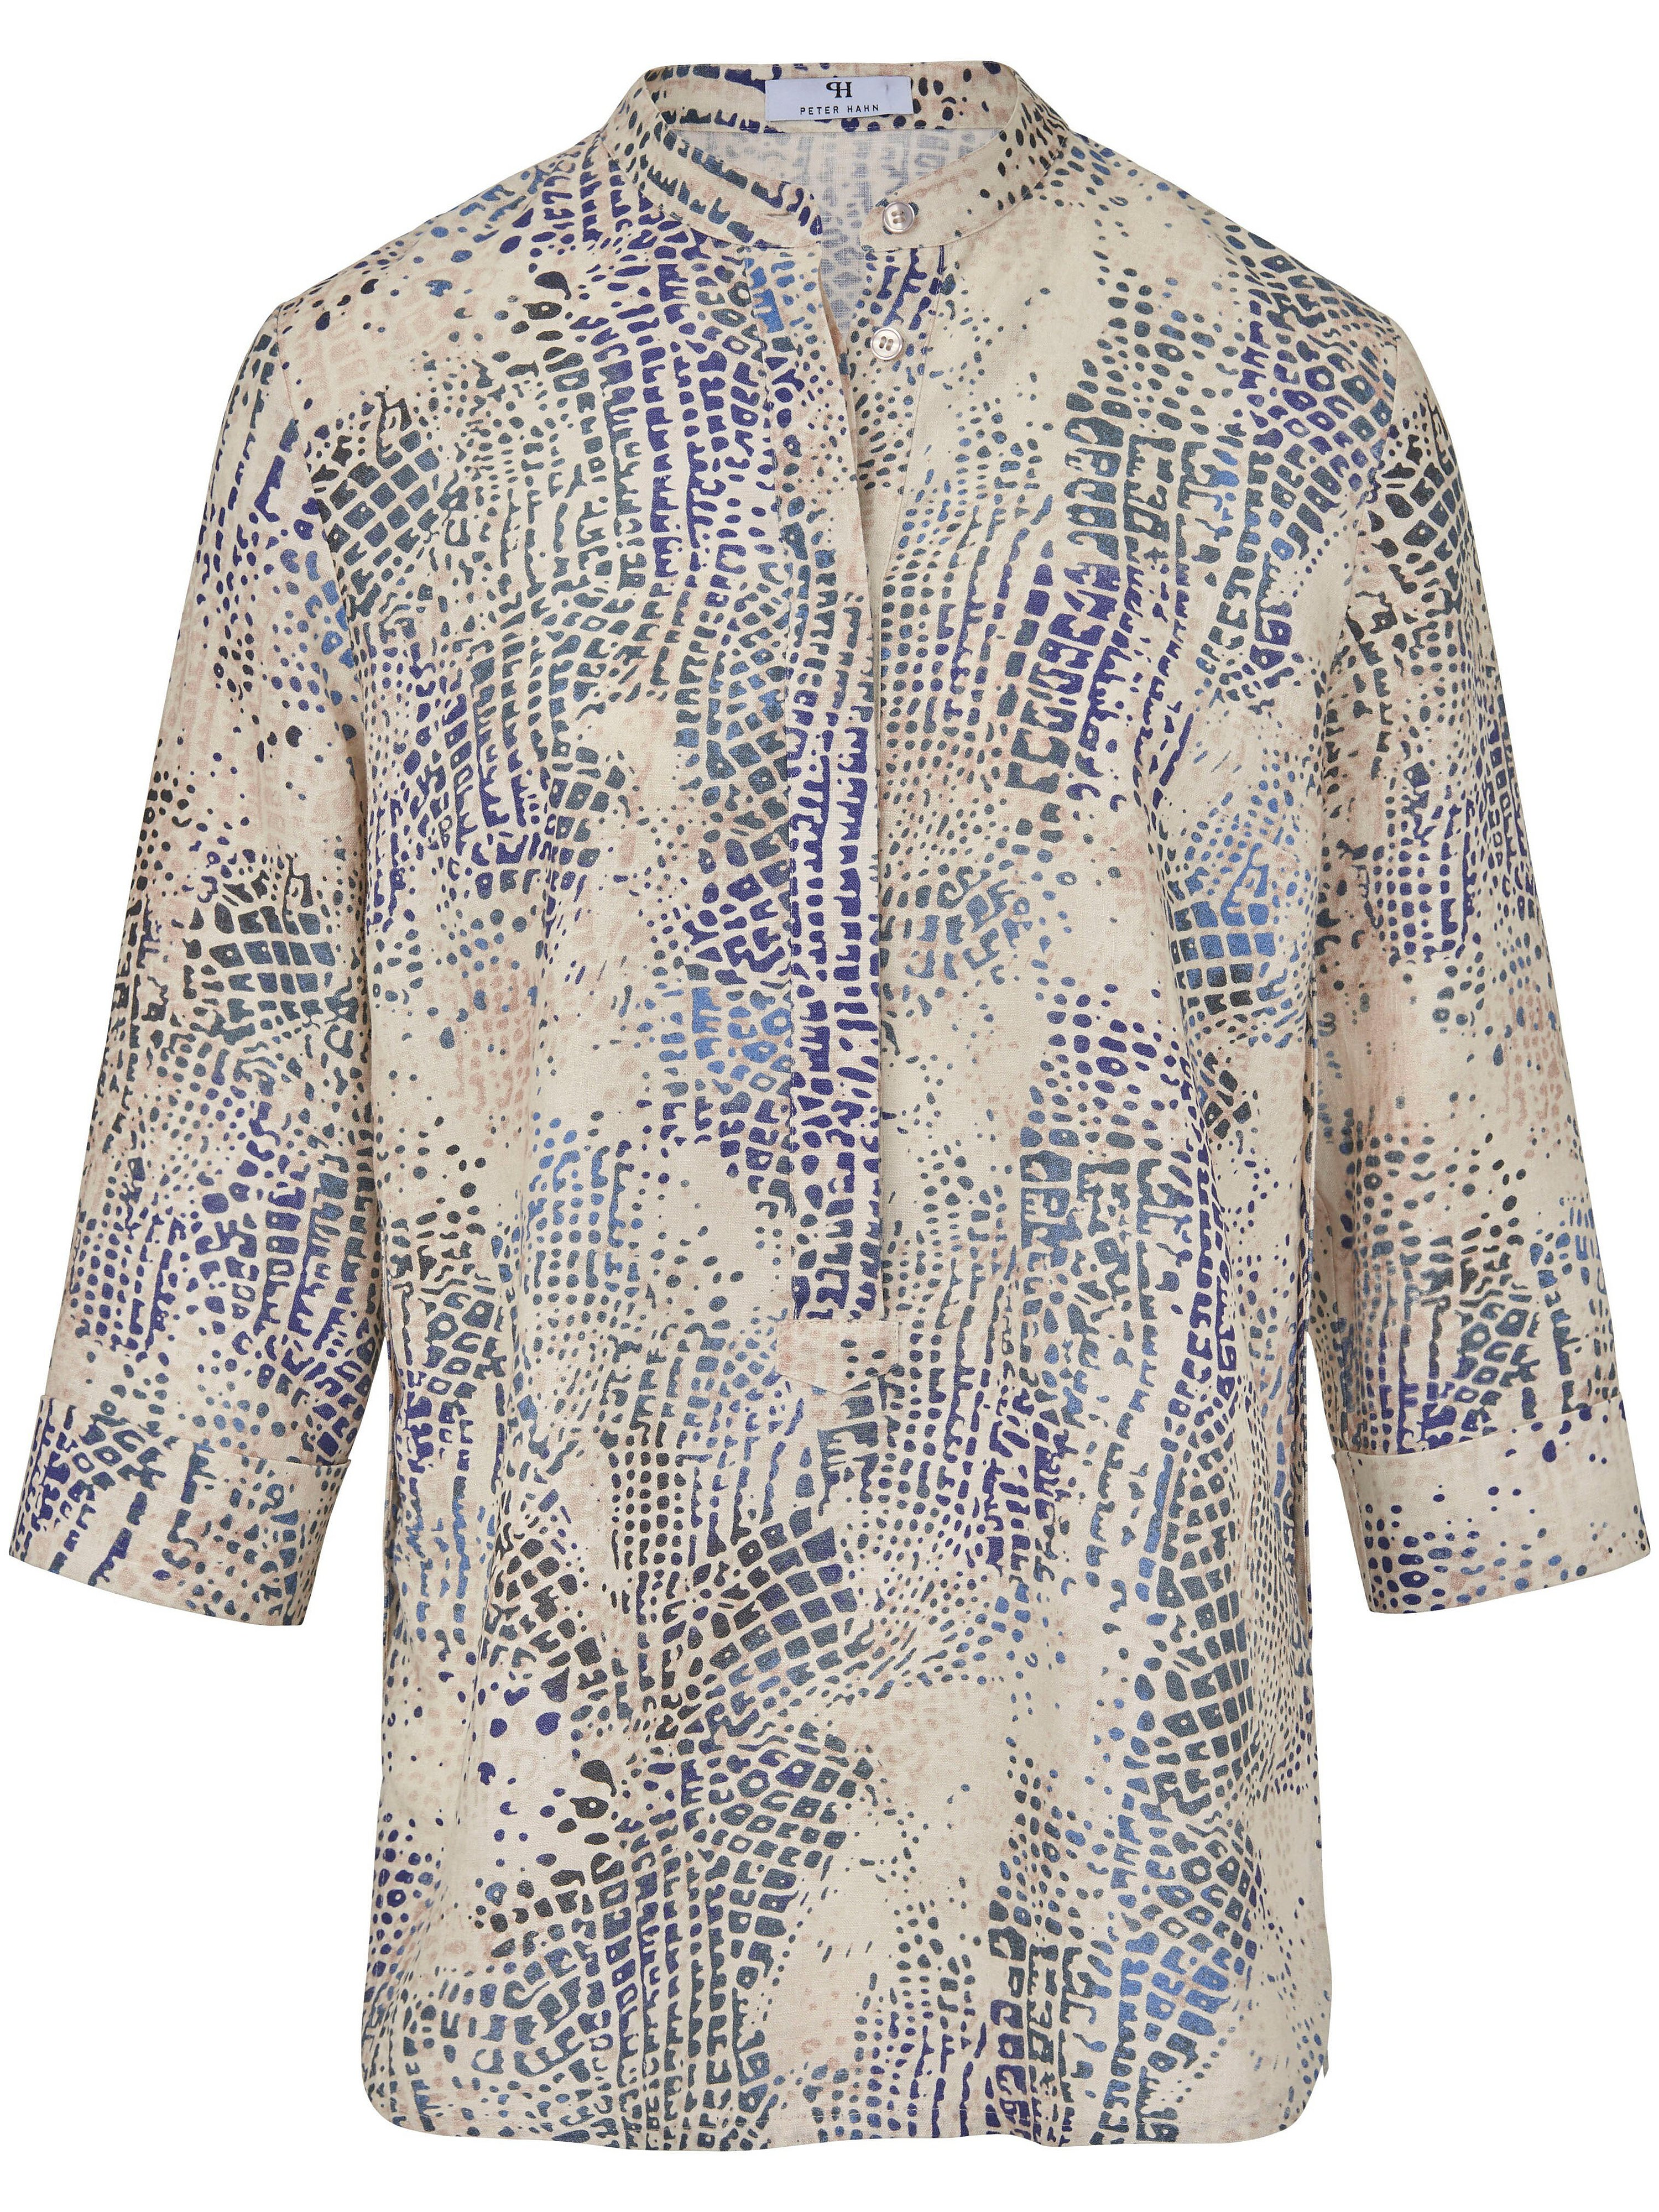 Blouse turn-up sleeves in 100% linen Peter Hahn multicoloured